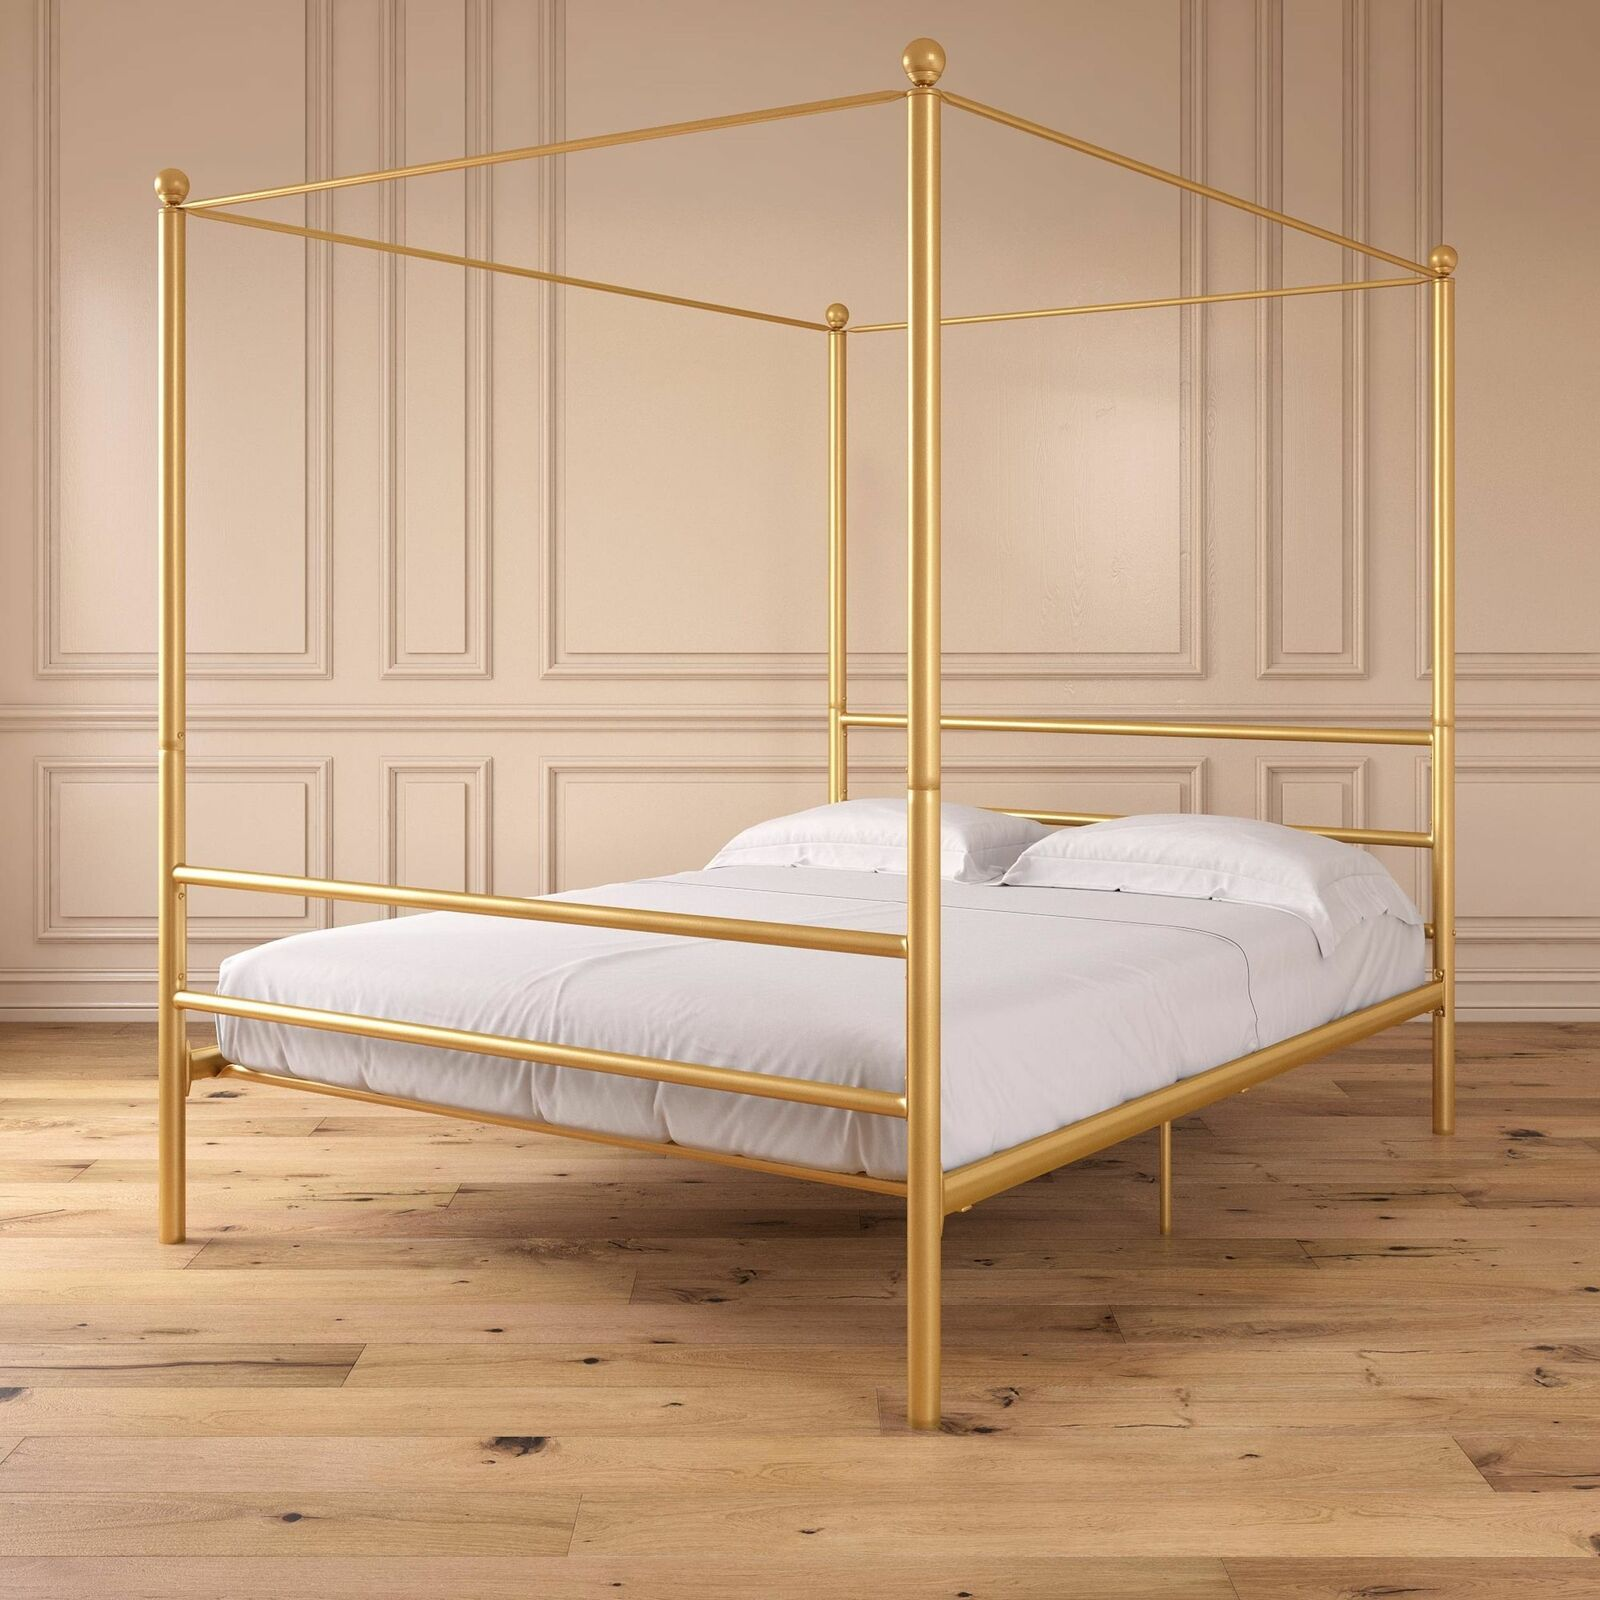 Queen Size Gold Metal Steel Canopy Bed Frame Modern Bedroom Furniture For Sale Online